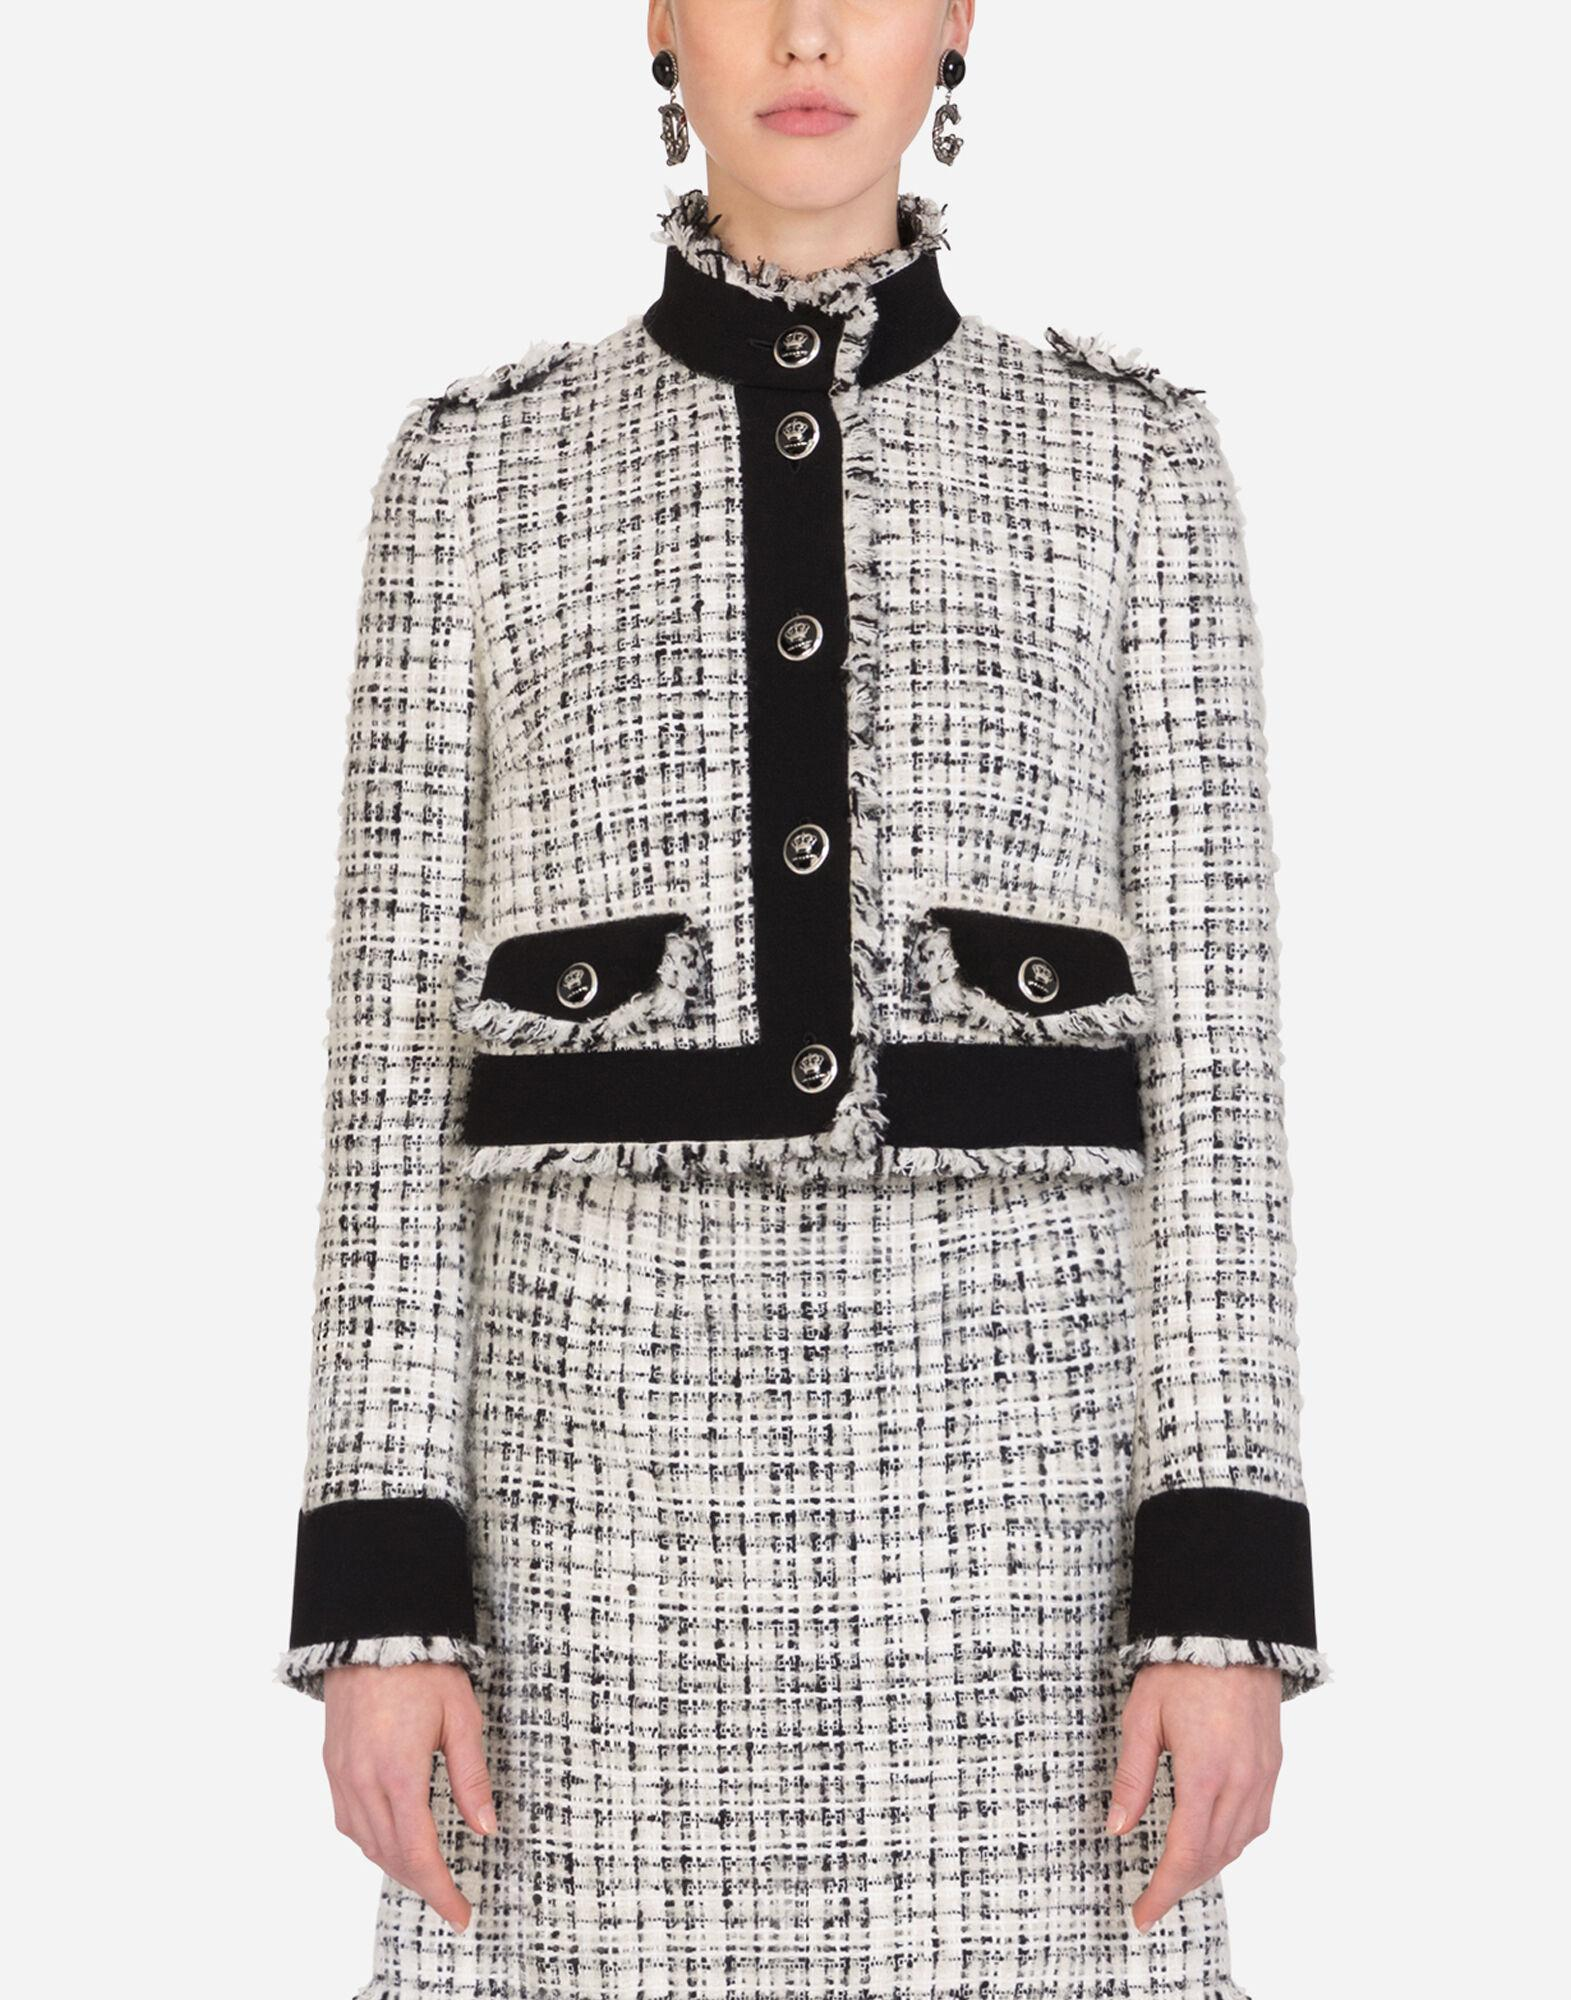 Cropped single-breasted jacket in tweed with decorative buttons